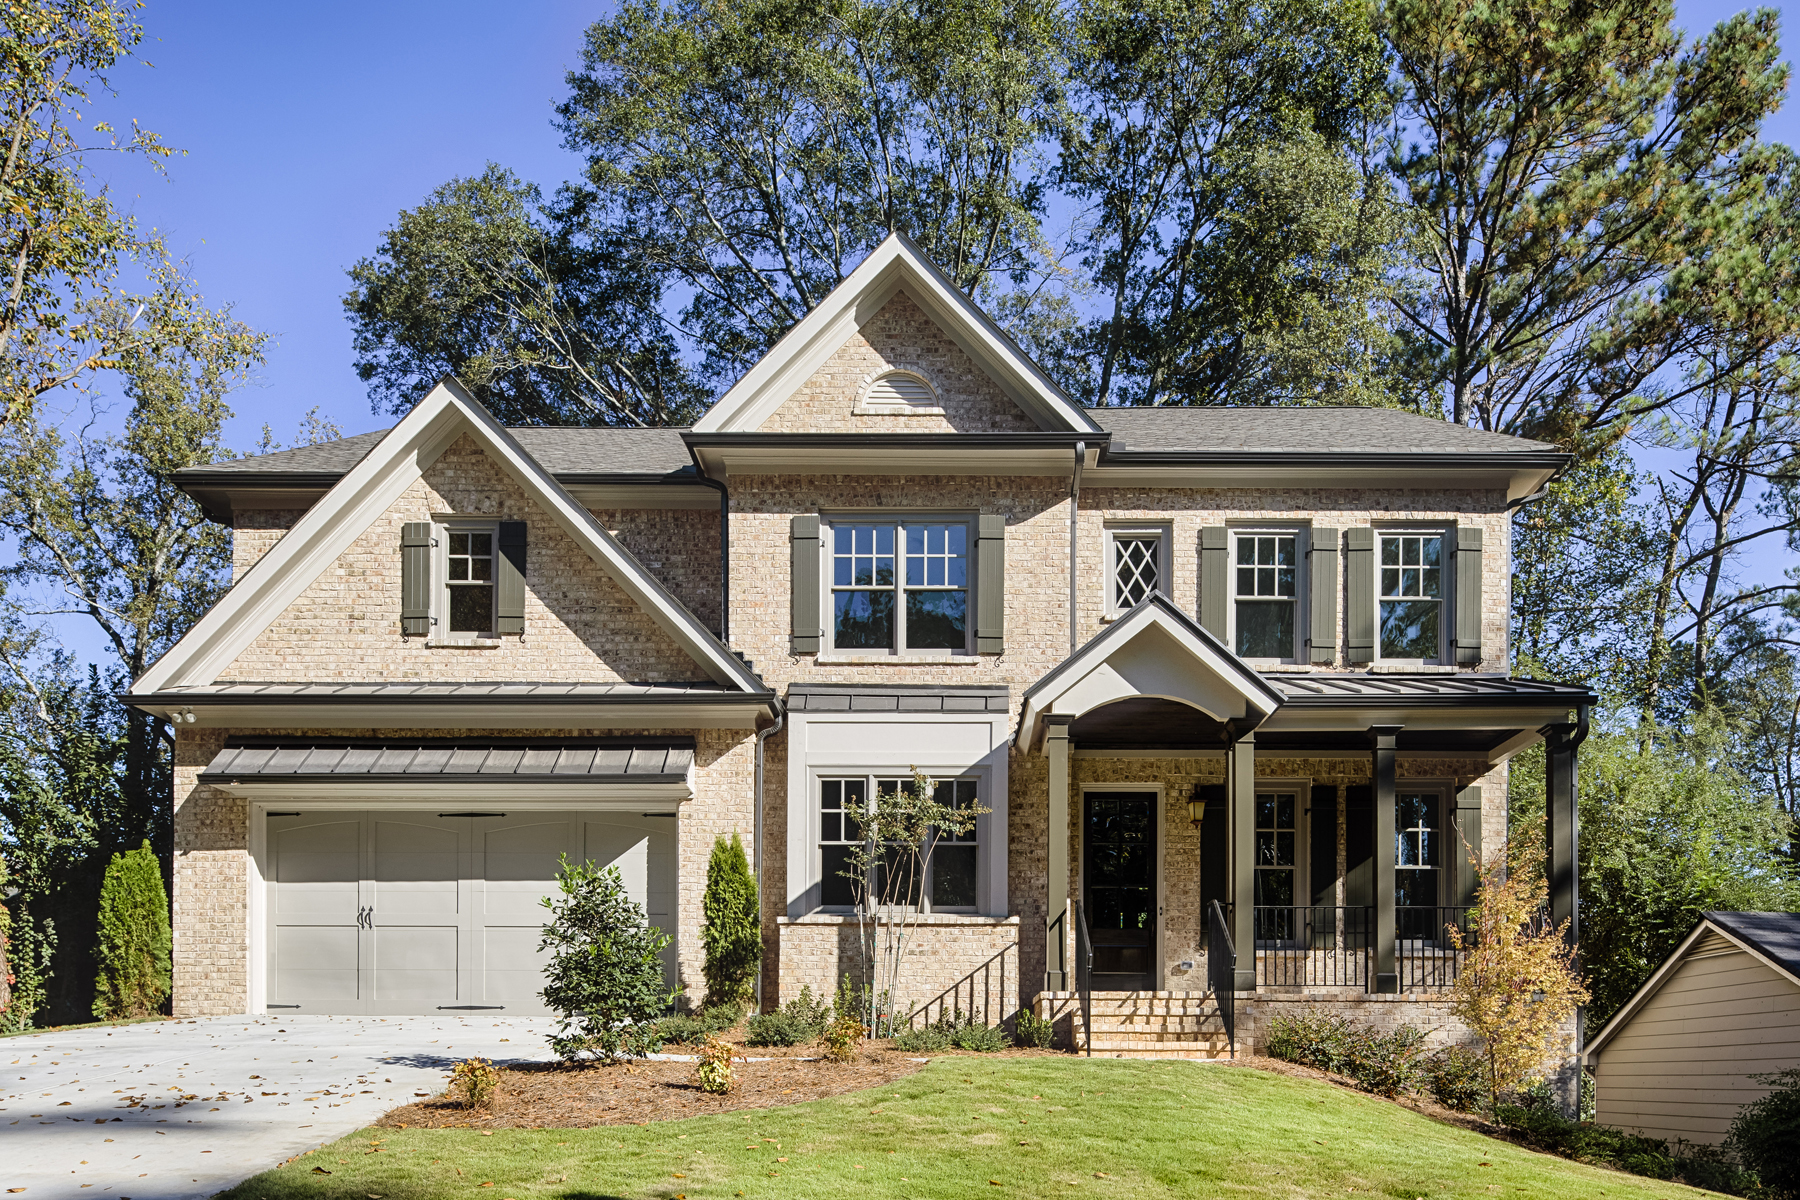 Single Family Home for Sale at Beautiful new construction in the heart of Buckhead! 1775 Warren Court NW Atlanta, Georgia, 30318 United States